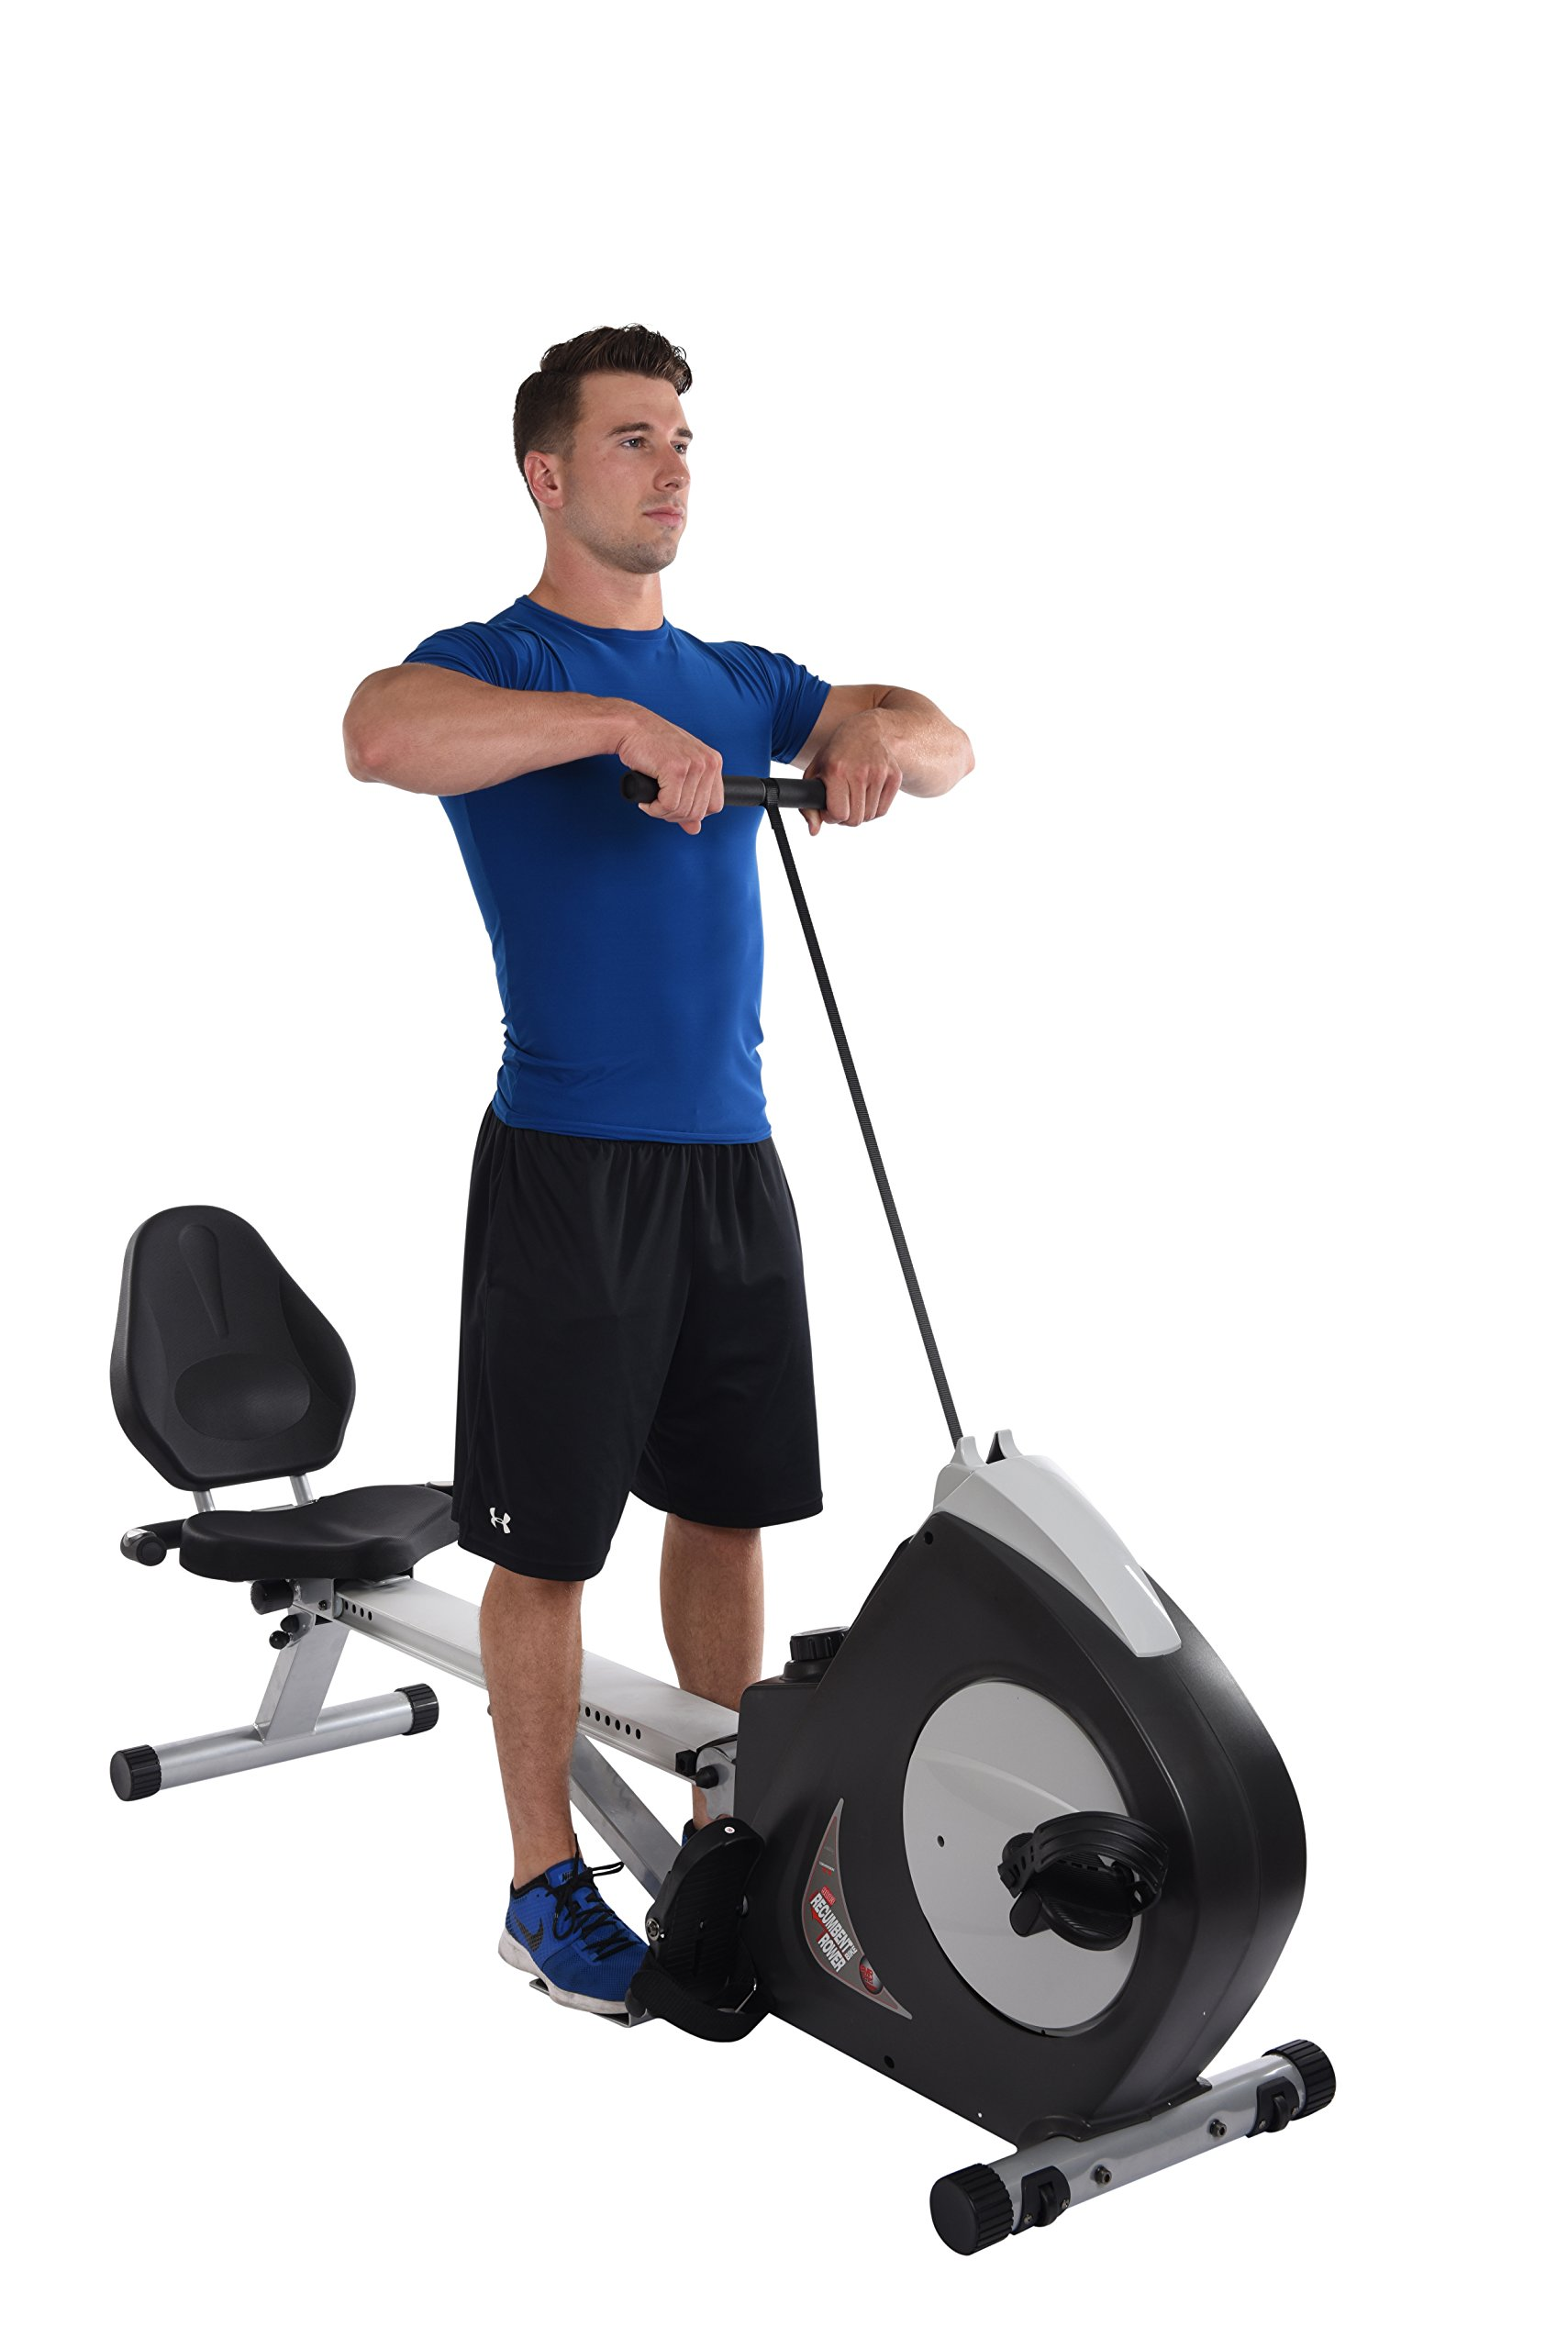 Stamina 15-9003 Deluxe Conversion II Recumbent / Rower by Stamina (Image #6)